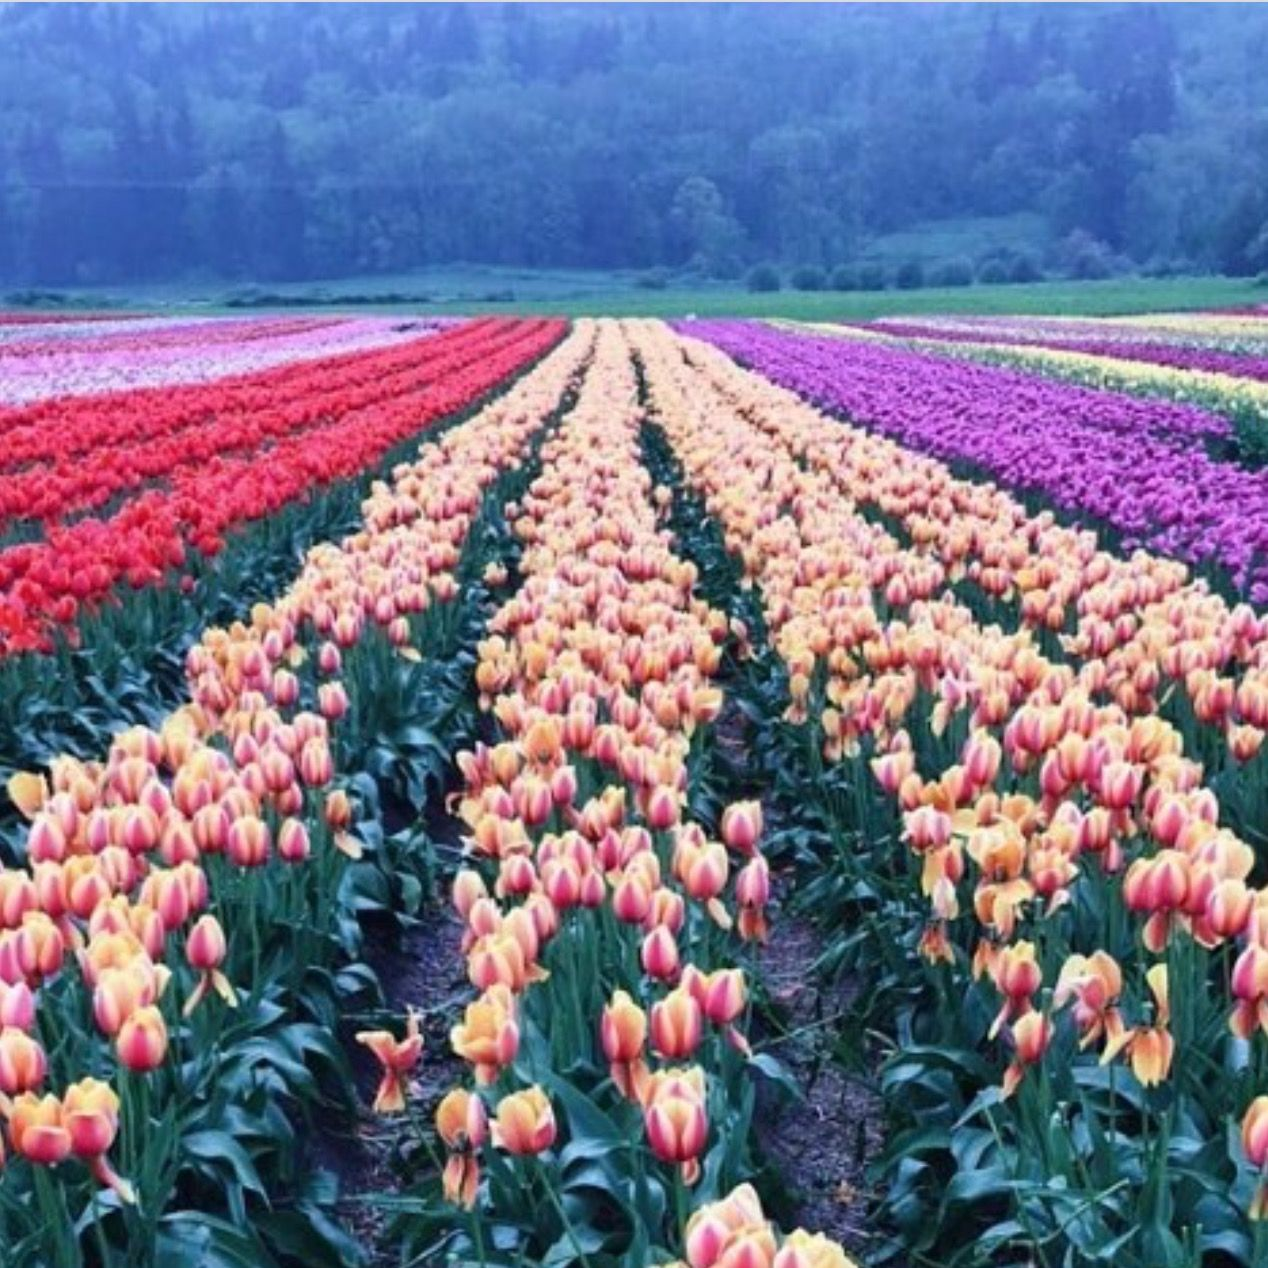 Tulips 🌷 as far as the eye can see!